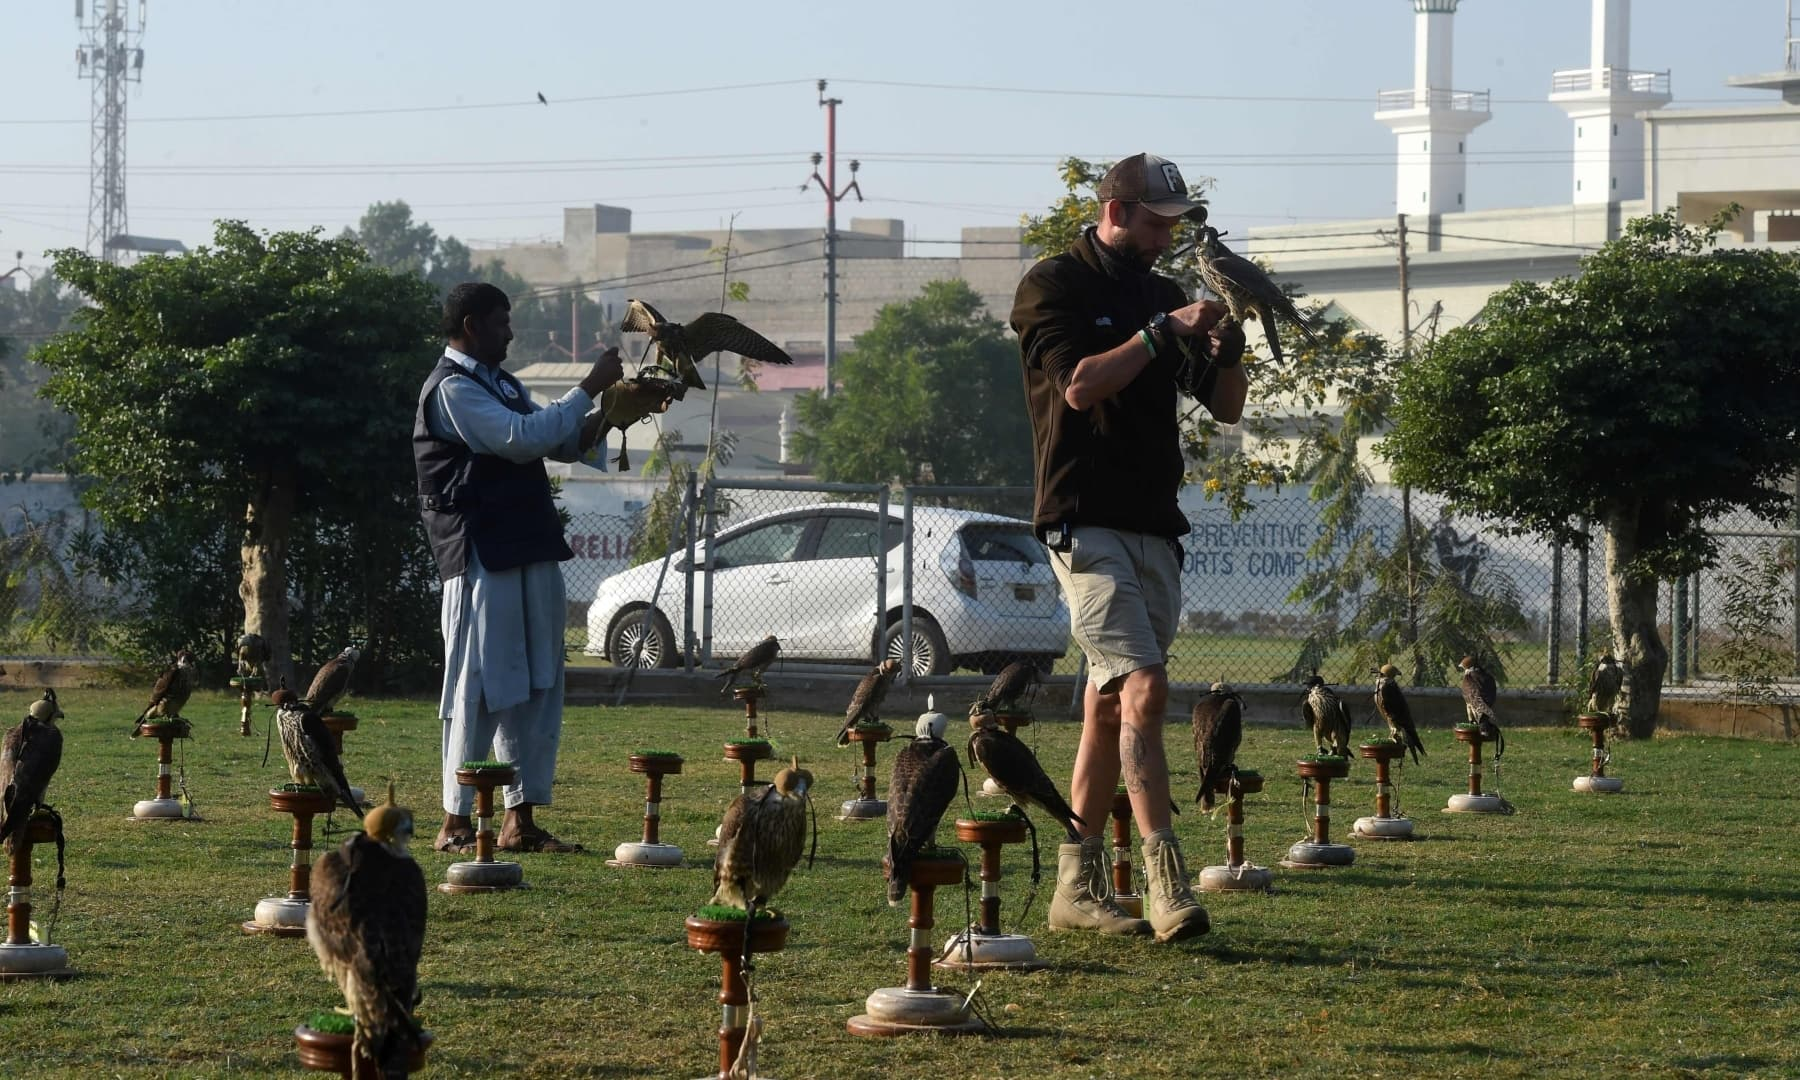 Hielko Van Rijthoven (R), a conservationist working with Wings of Change, examines a falcon seized by authorities from smugglers, in Karachi. — AFP